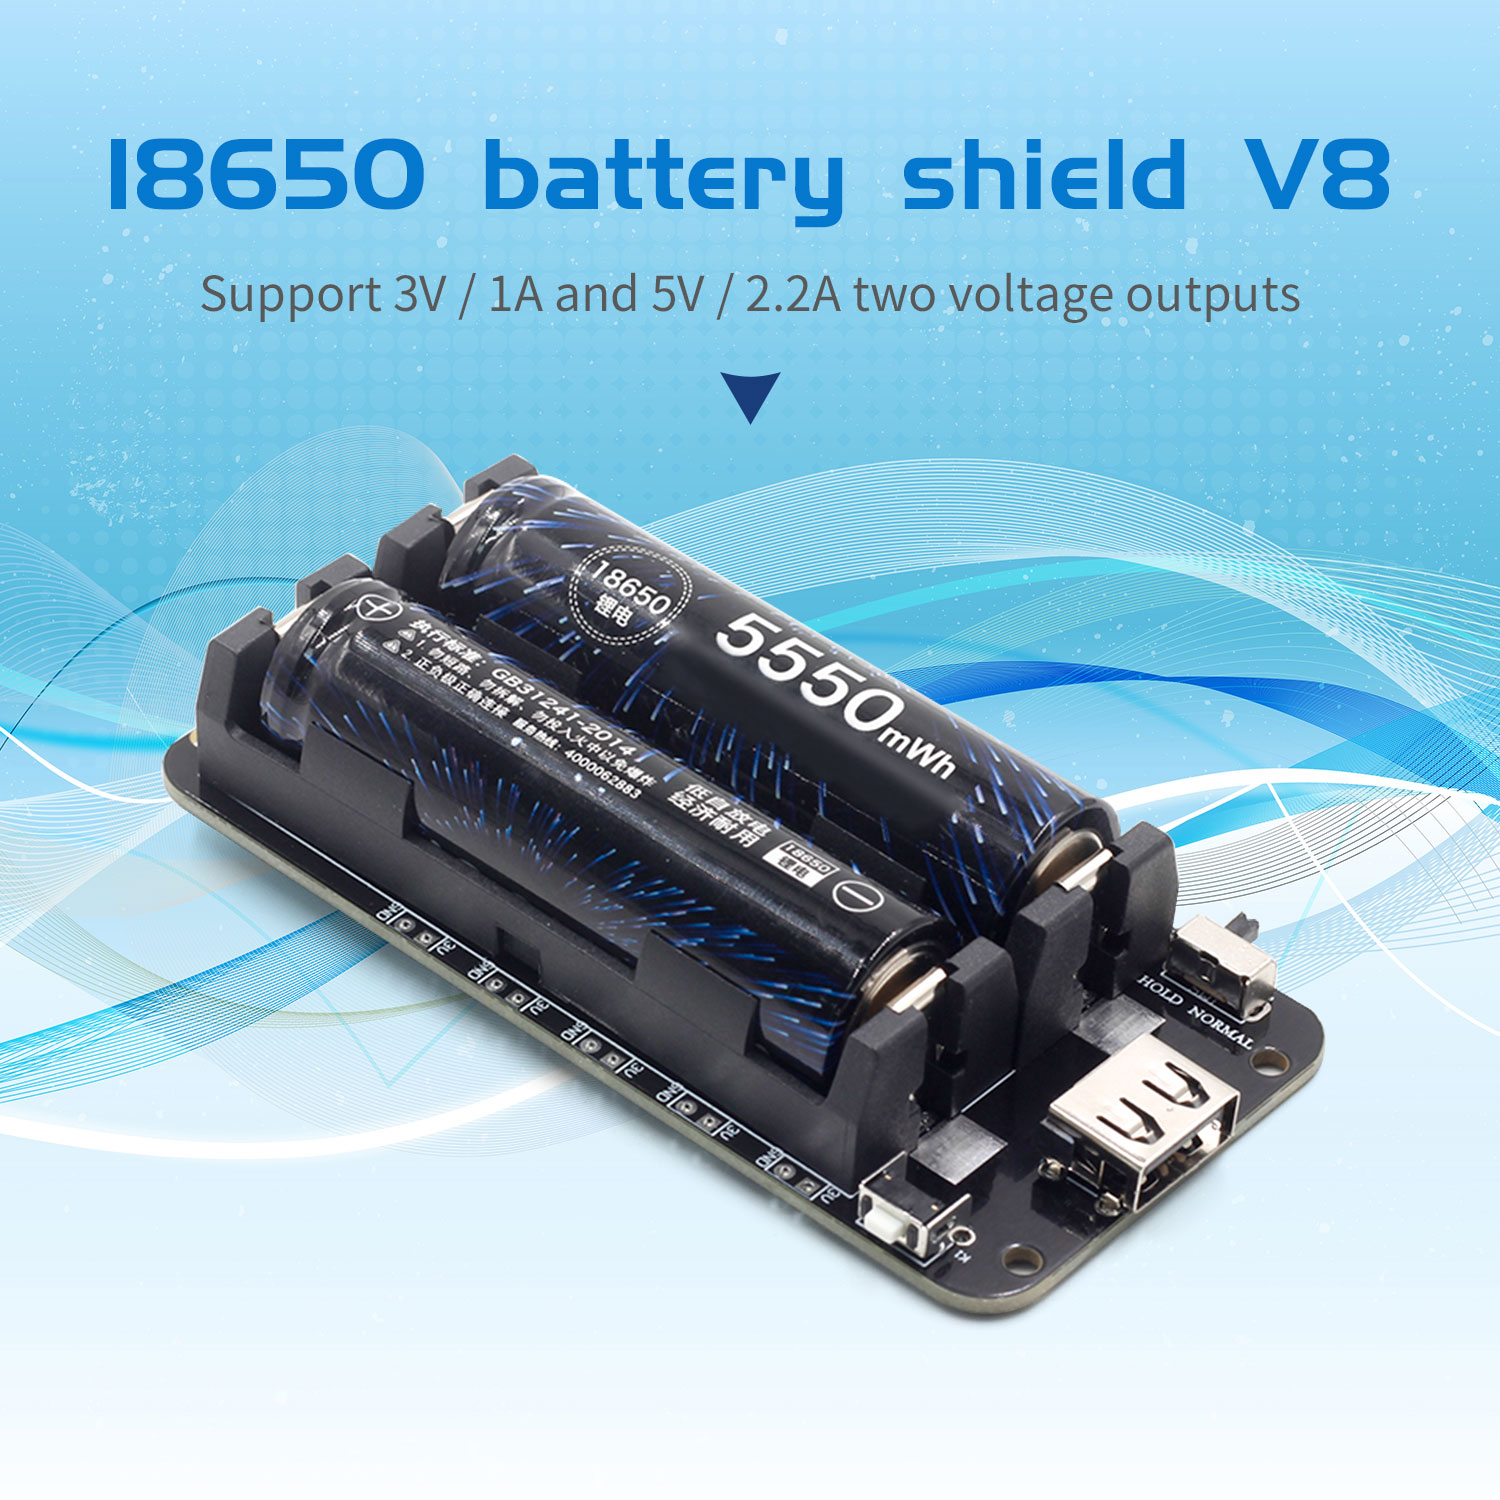 Two Voltage 18650 Lithium Battery Shield V8 Mobile Power Expansion Board Module 5V/3A 3V/1A Micro USB For Arduino ESP32 ESP8266